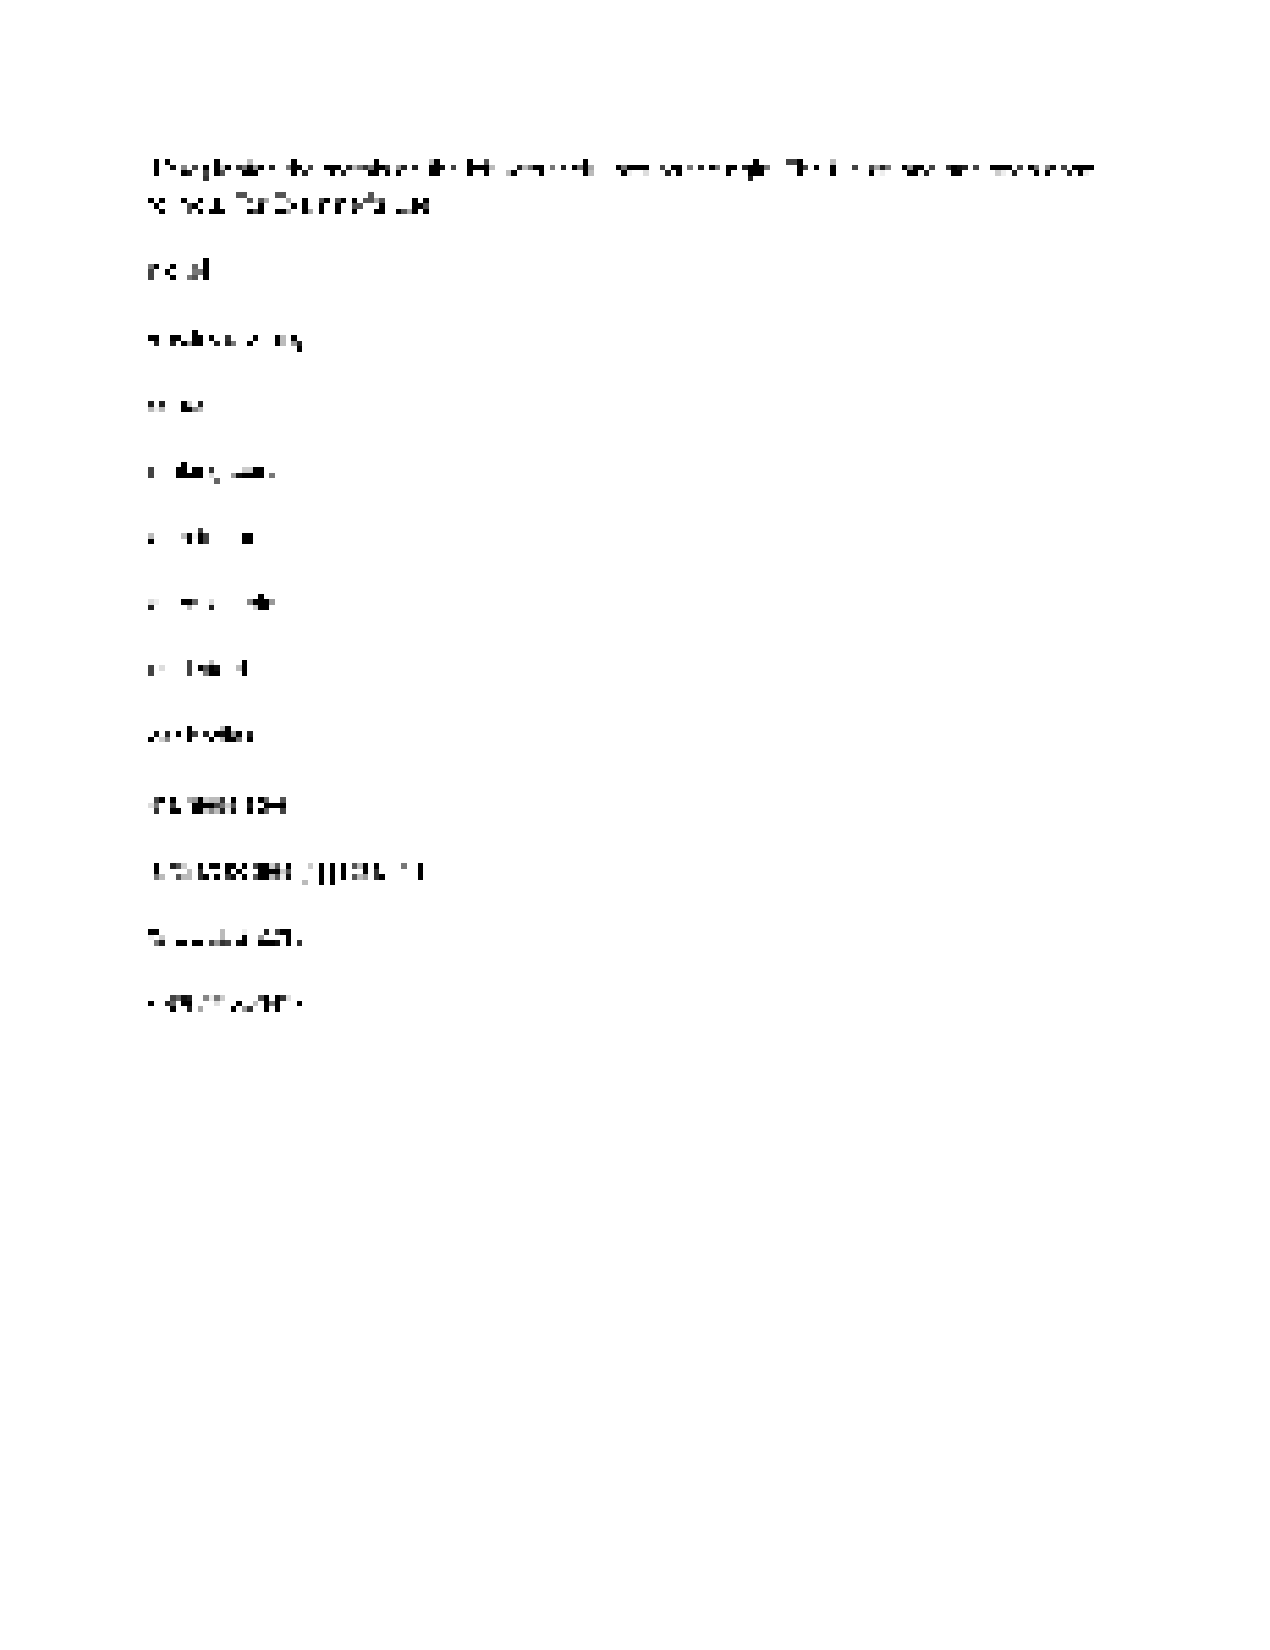 Chemistry past exam paper cambridge igcse | Coursework Service